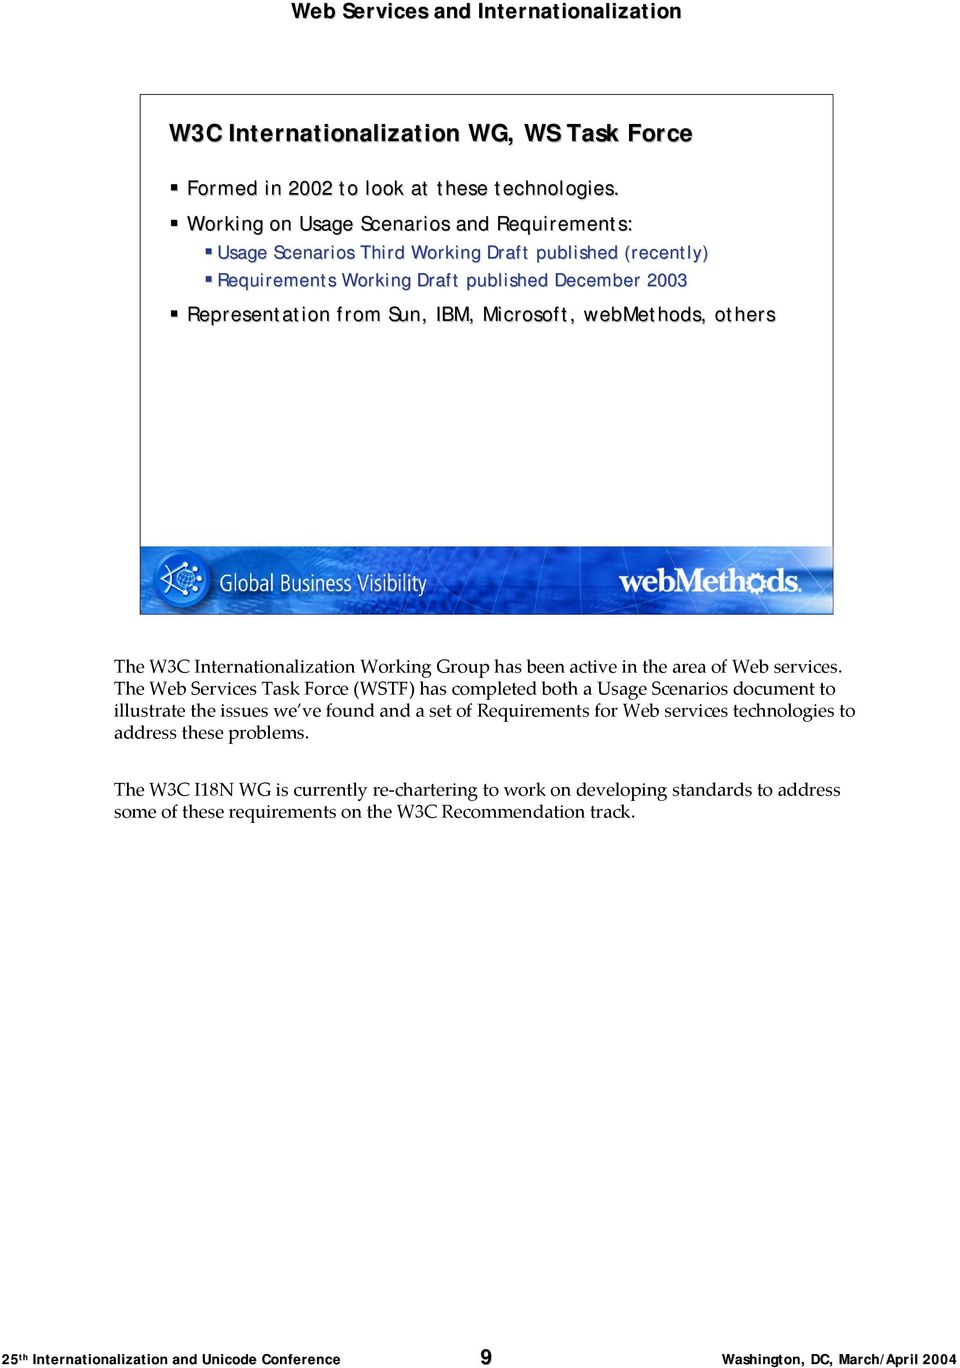 webmethods, others The W3C Internationalization Working Group has been active in the area of Web services.